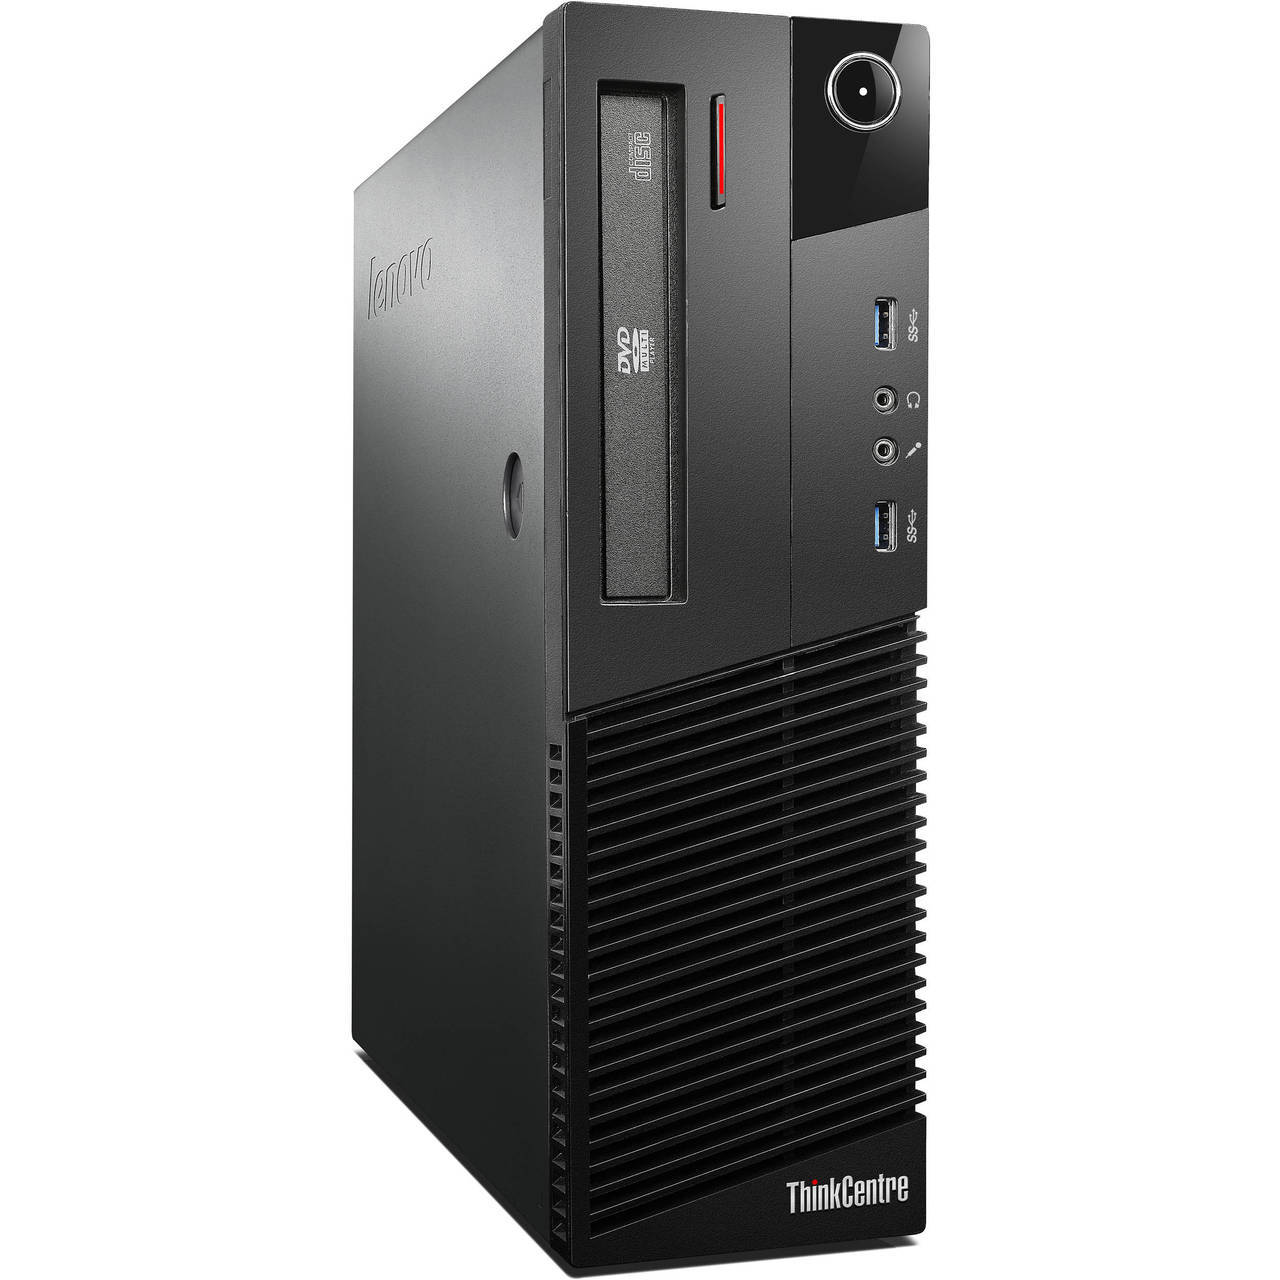 REFURBISHED LENOVO PC M83 SFF I3-4130 4GB 500GB DVDRW LINUX